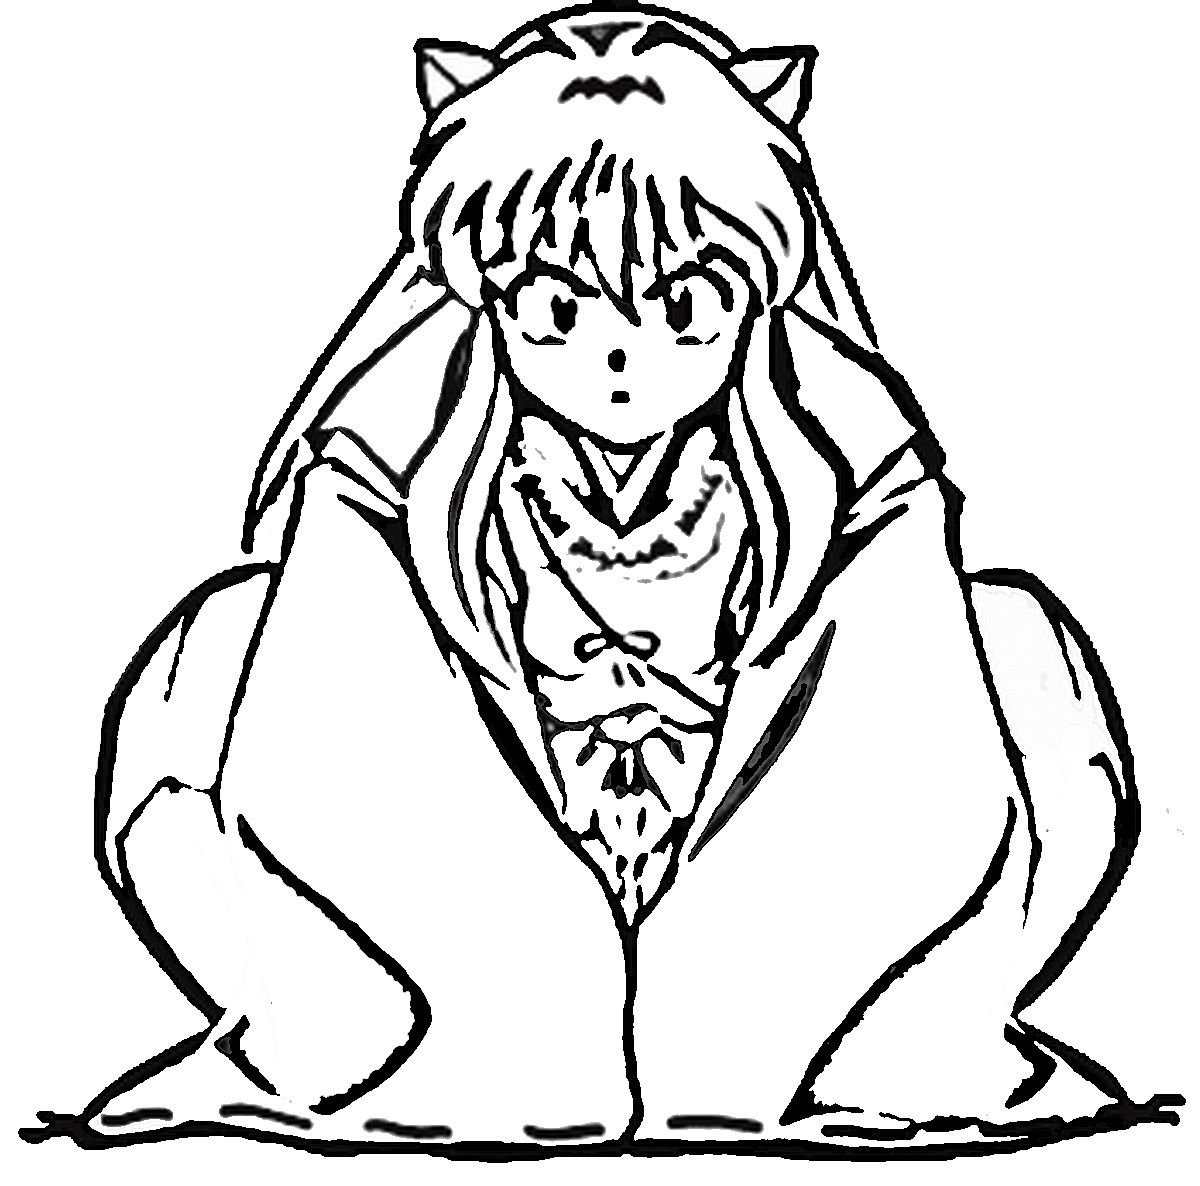 inuyasha coloring page to print,printable,coloring pages